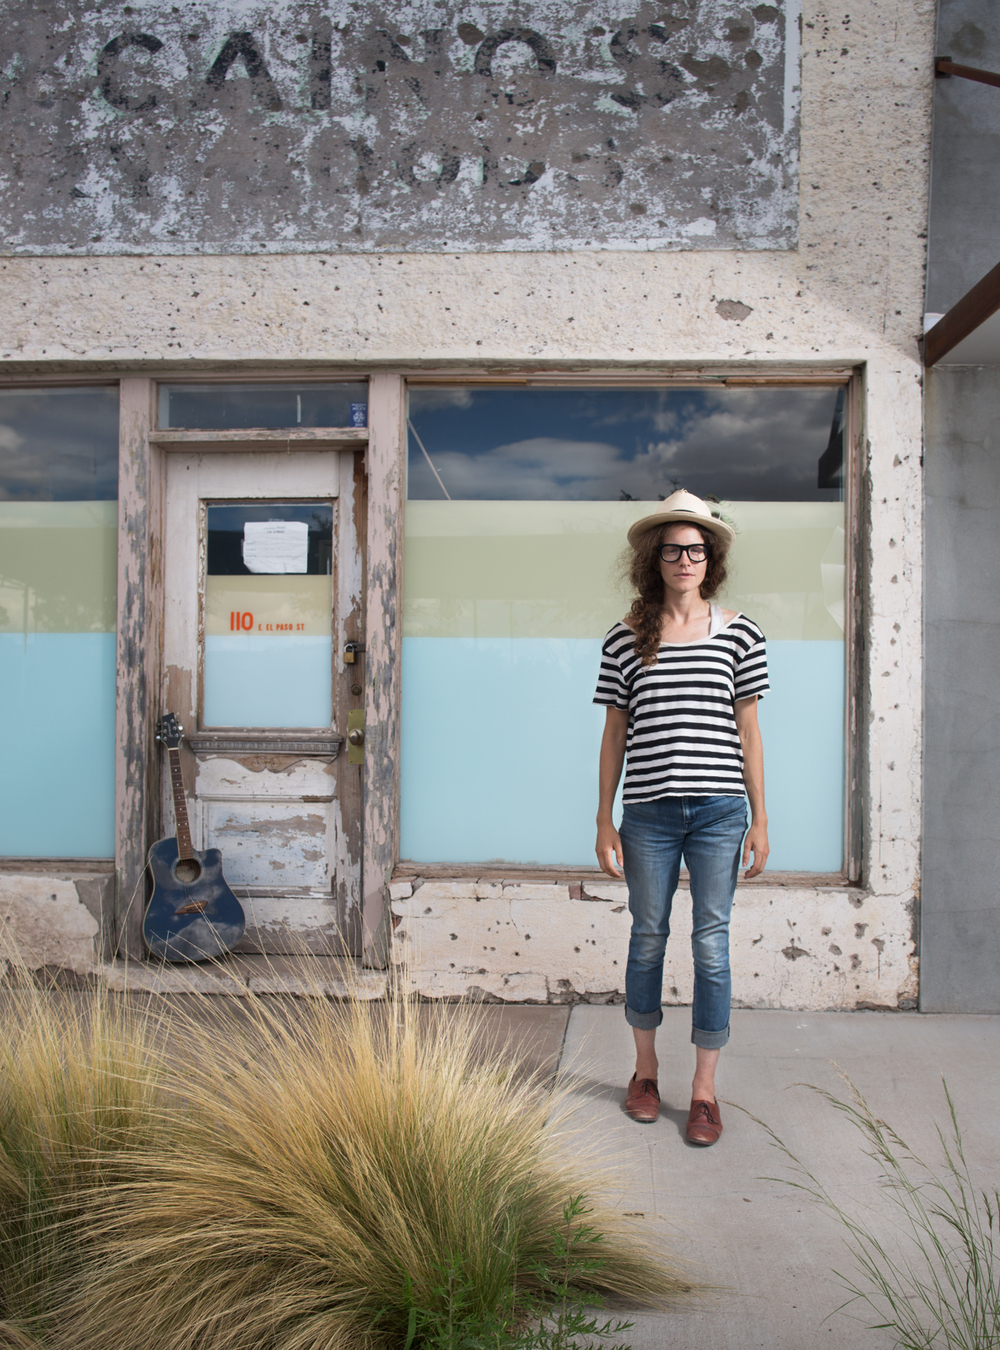 Zoey with her guitar in Marfa, Texas.